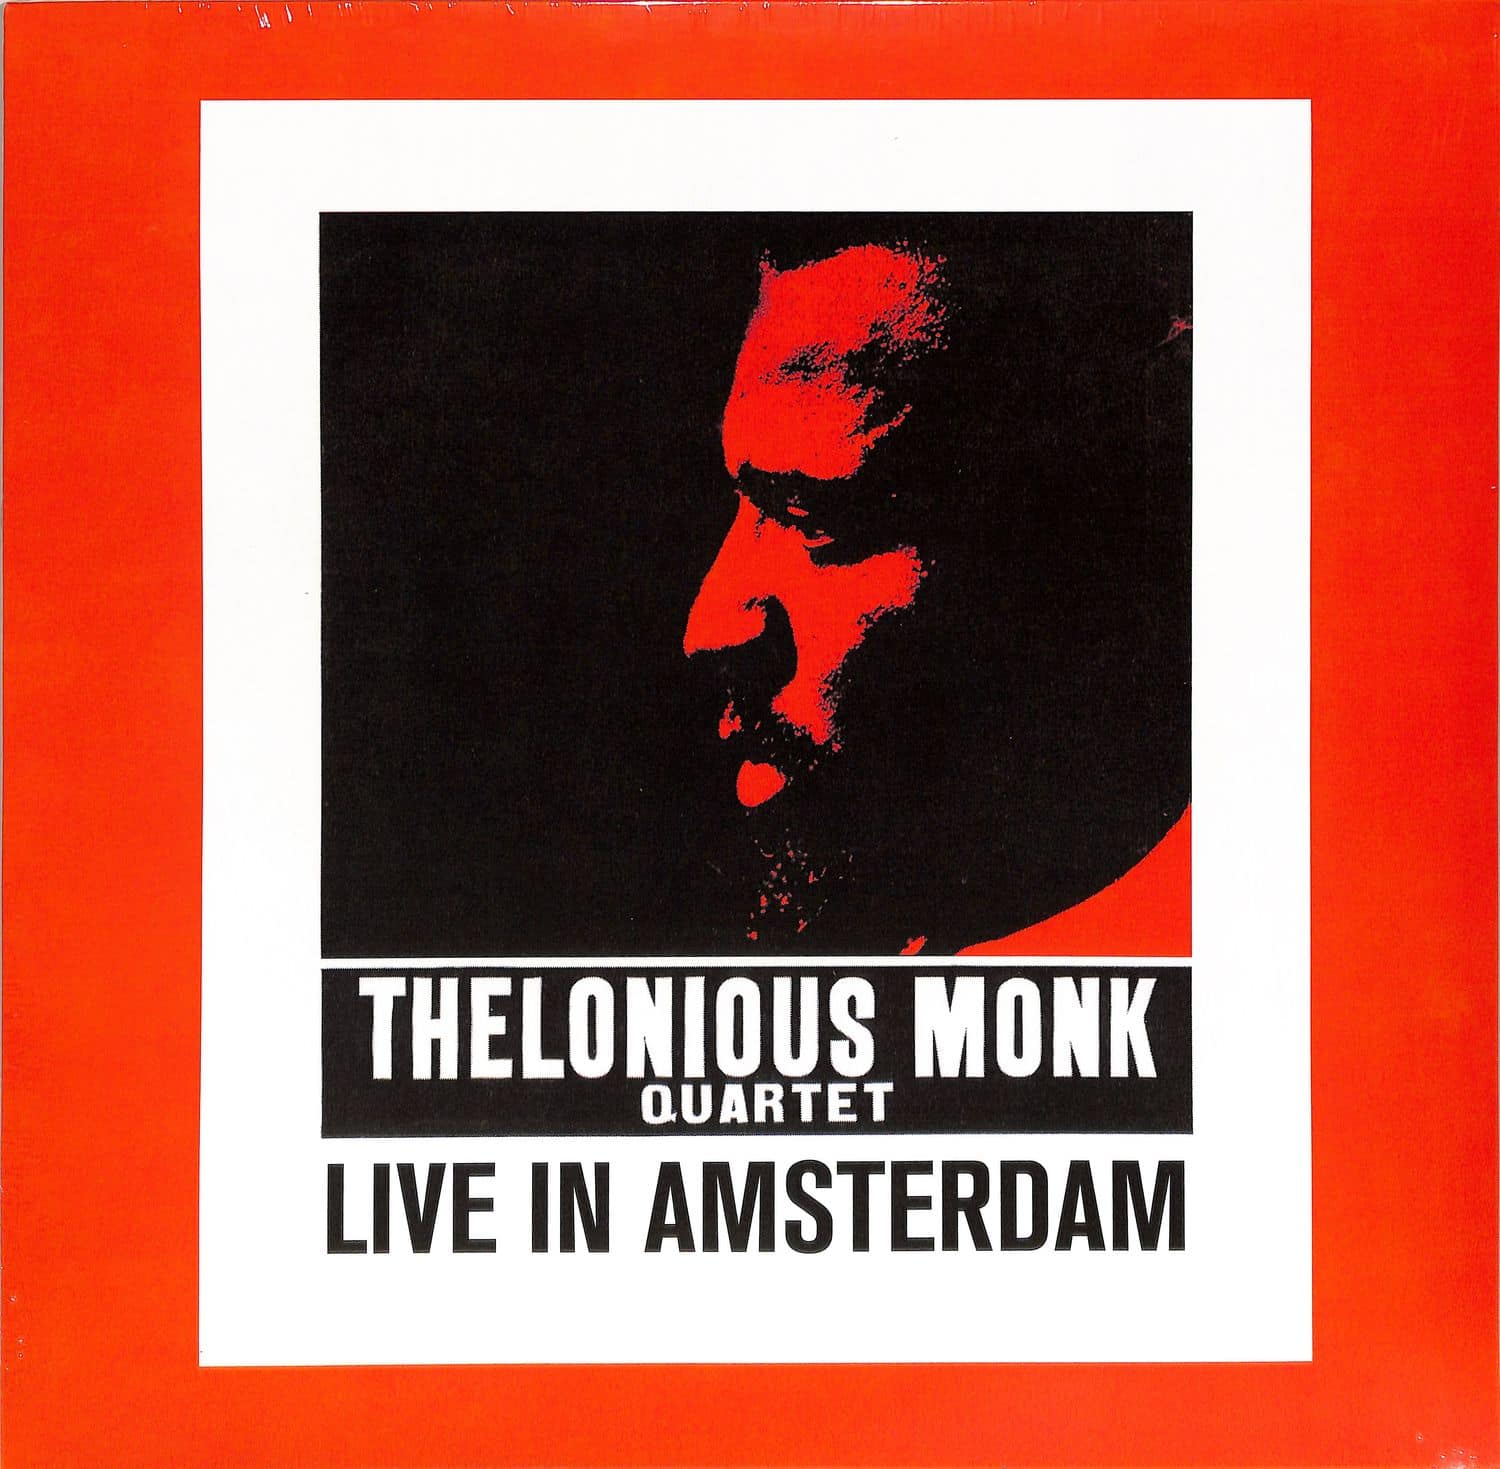 Thelonious Monk Quartet - LIVE IN AMSTERDAM